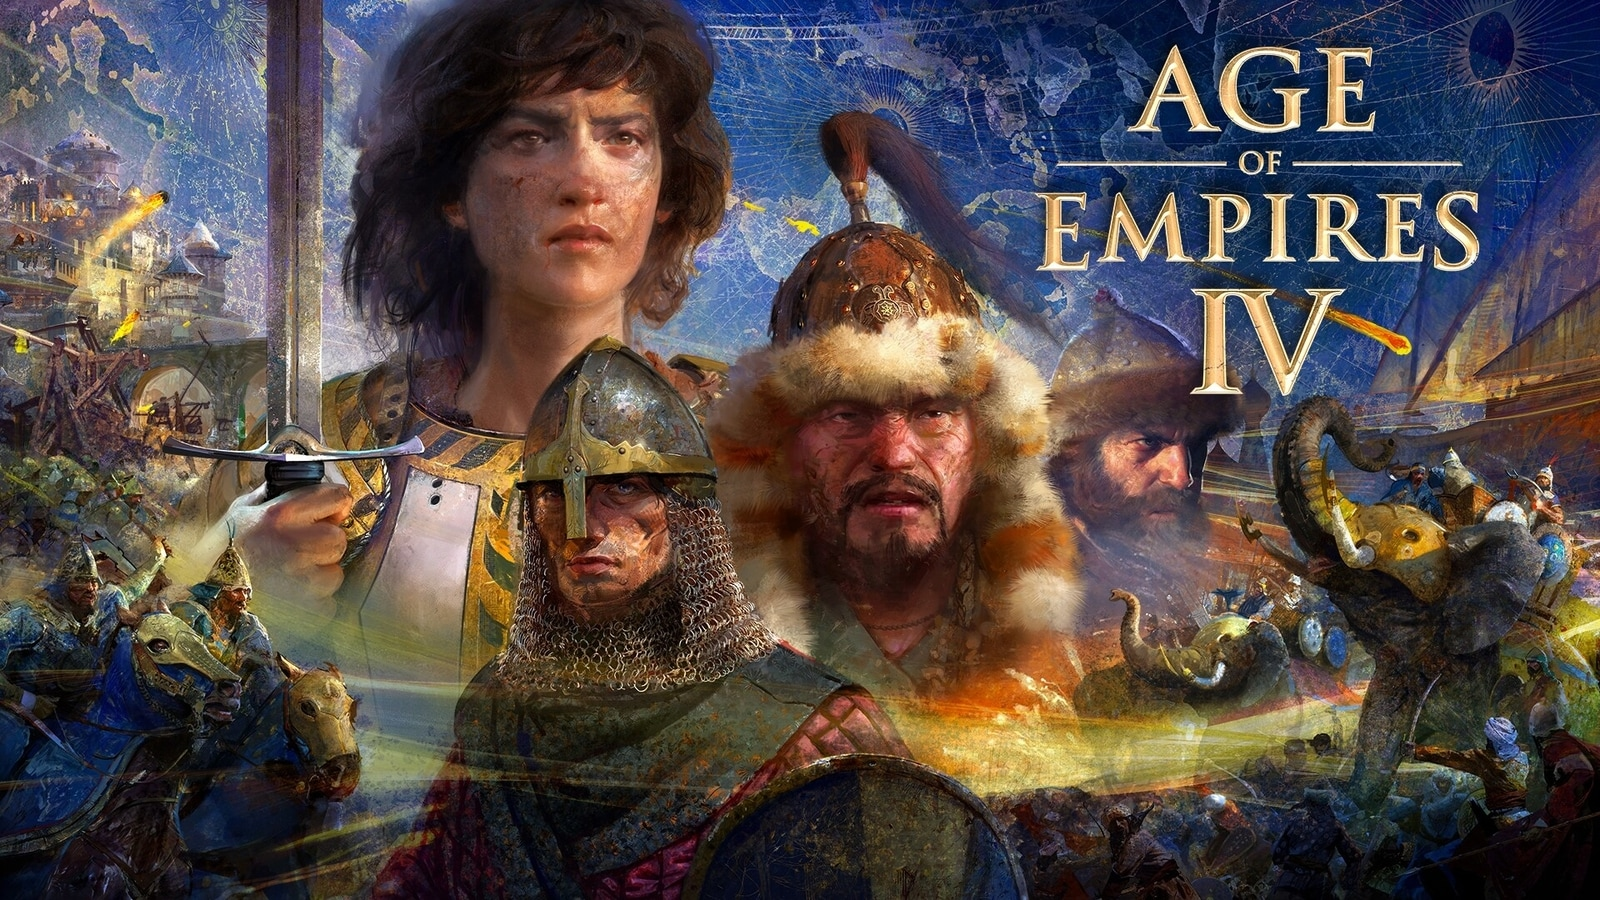 E3 2021: Microsoft has confirmed the date of the Age of Empires IV version;  here's what fans can expect